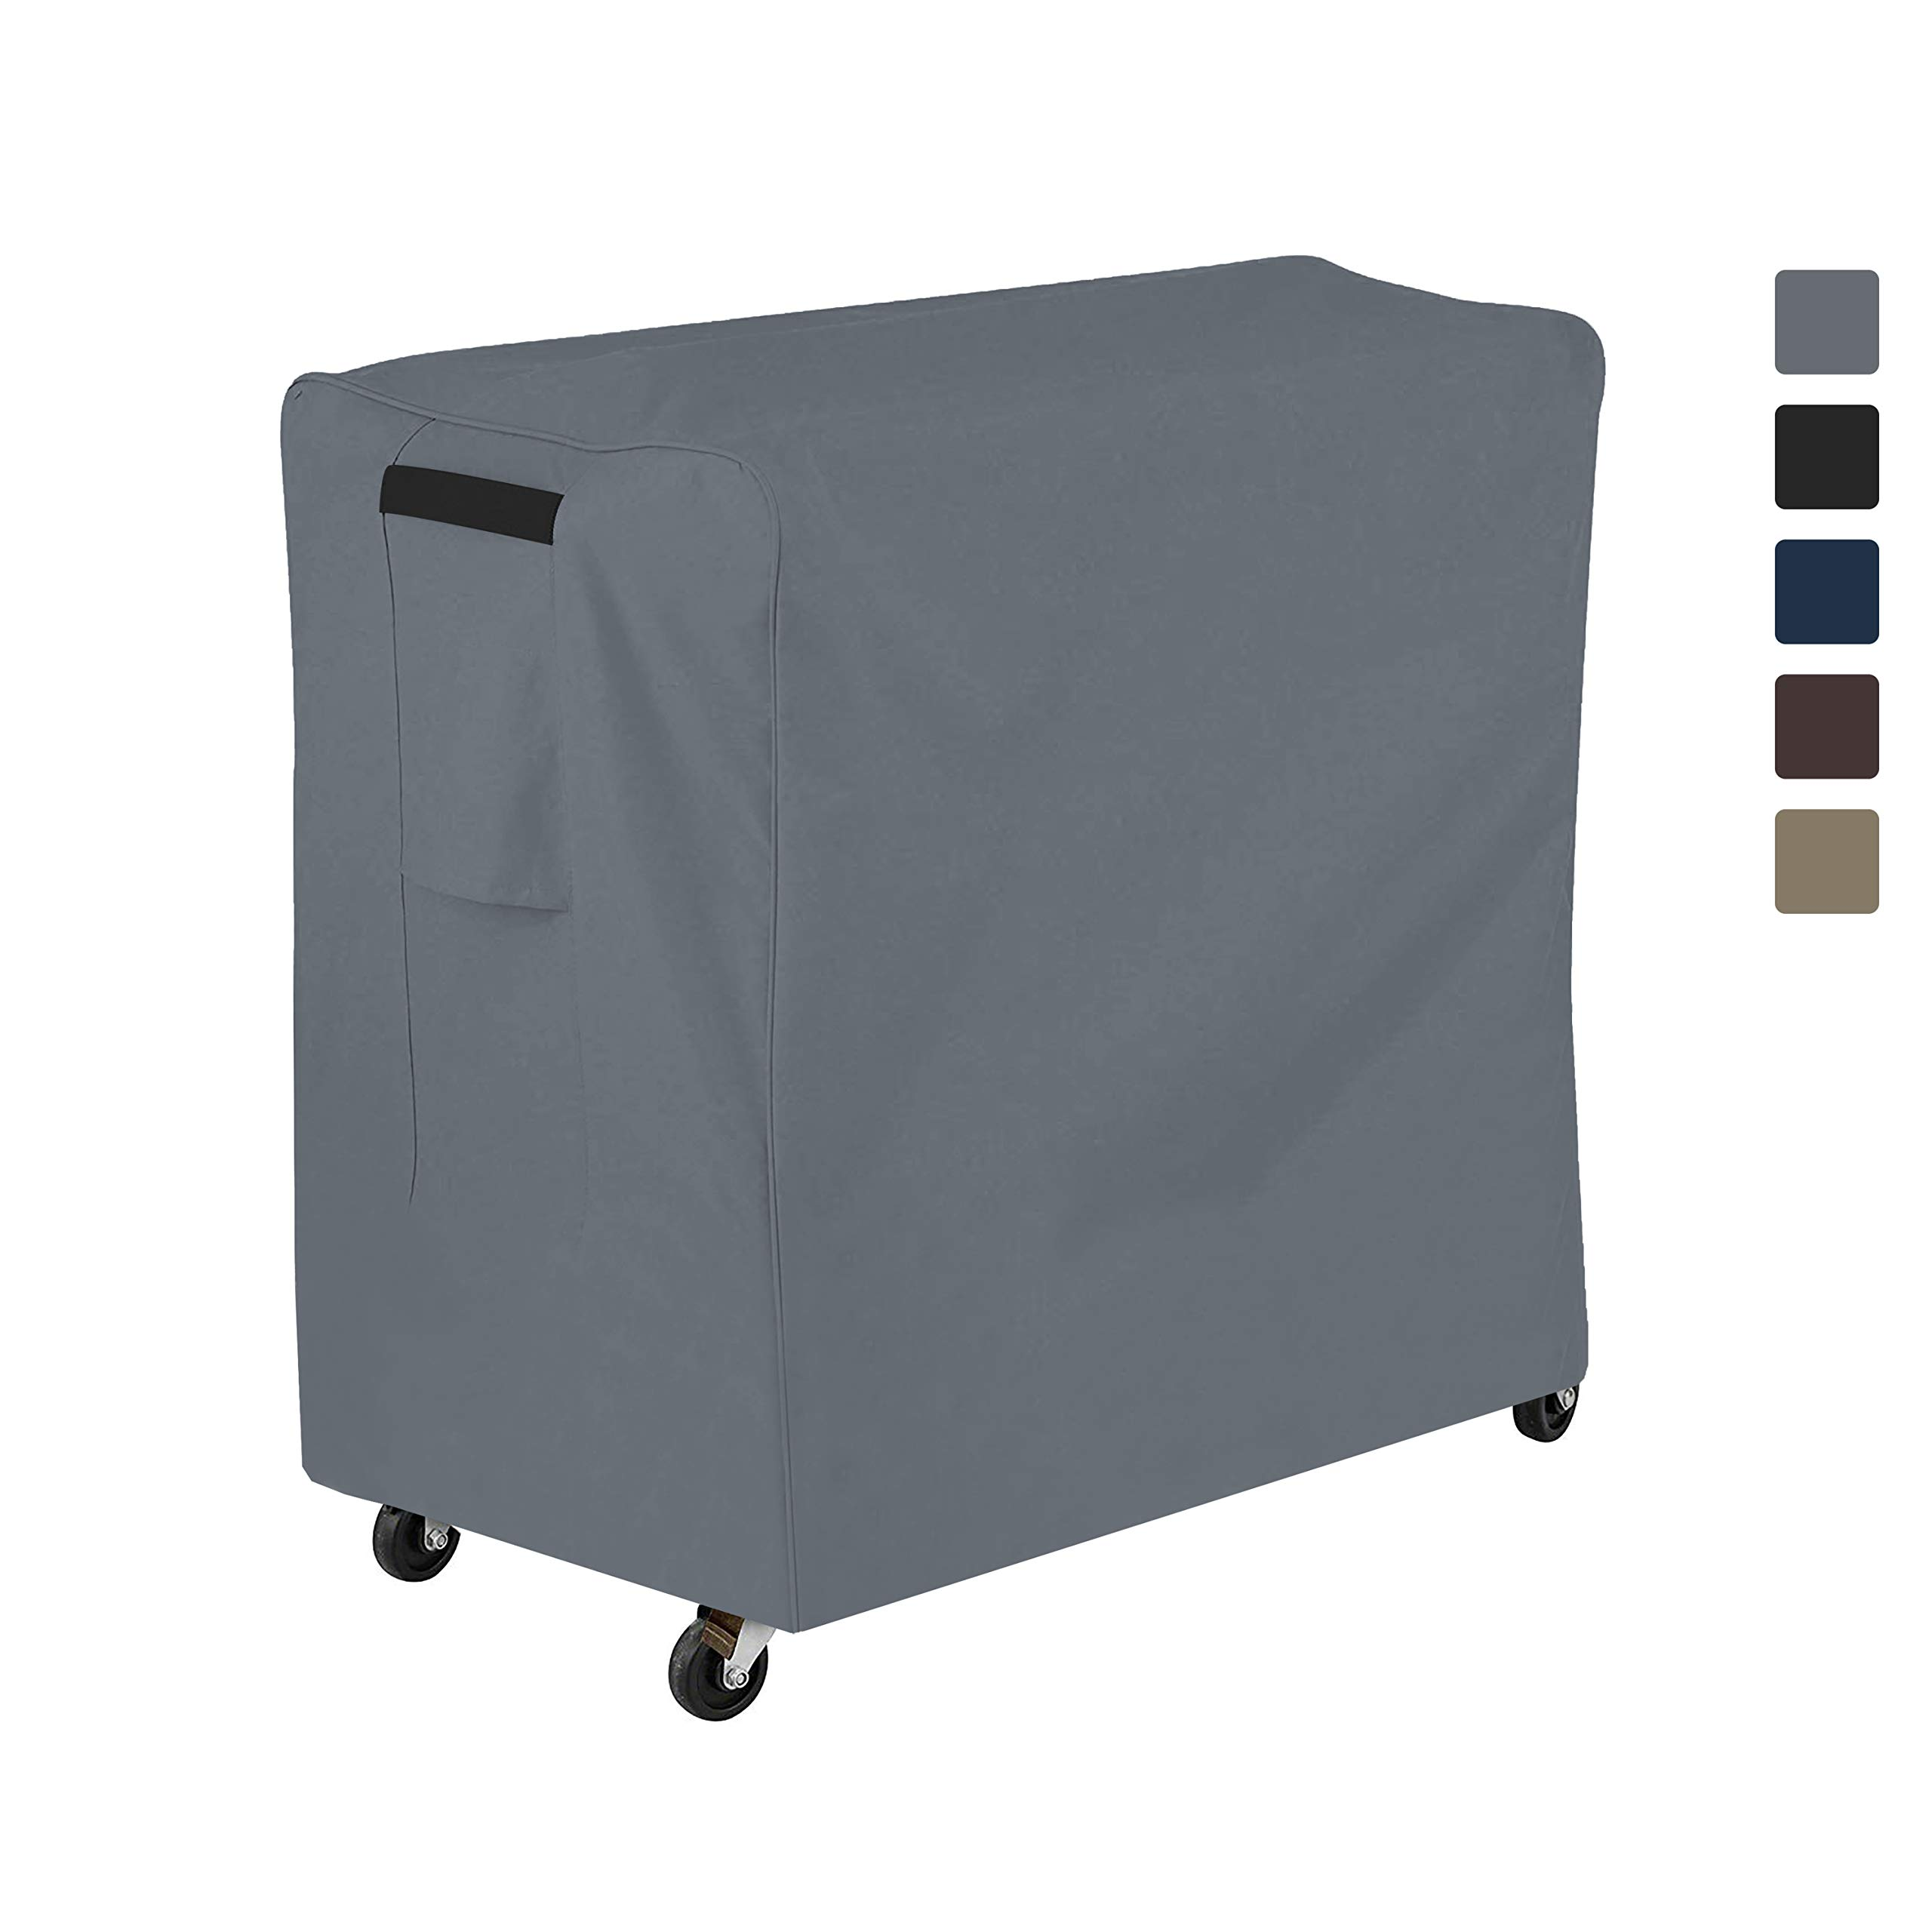 COVERS & ALL Cooler Cover 12 Oz Waterproof - Rolling Cooler Cart Cover 100% UV & Weather Resistant with Air Pocket and Drawstring for Snug Fit (36'' H x 44'' W x 24'' D, Grey) by COVERS & ALL